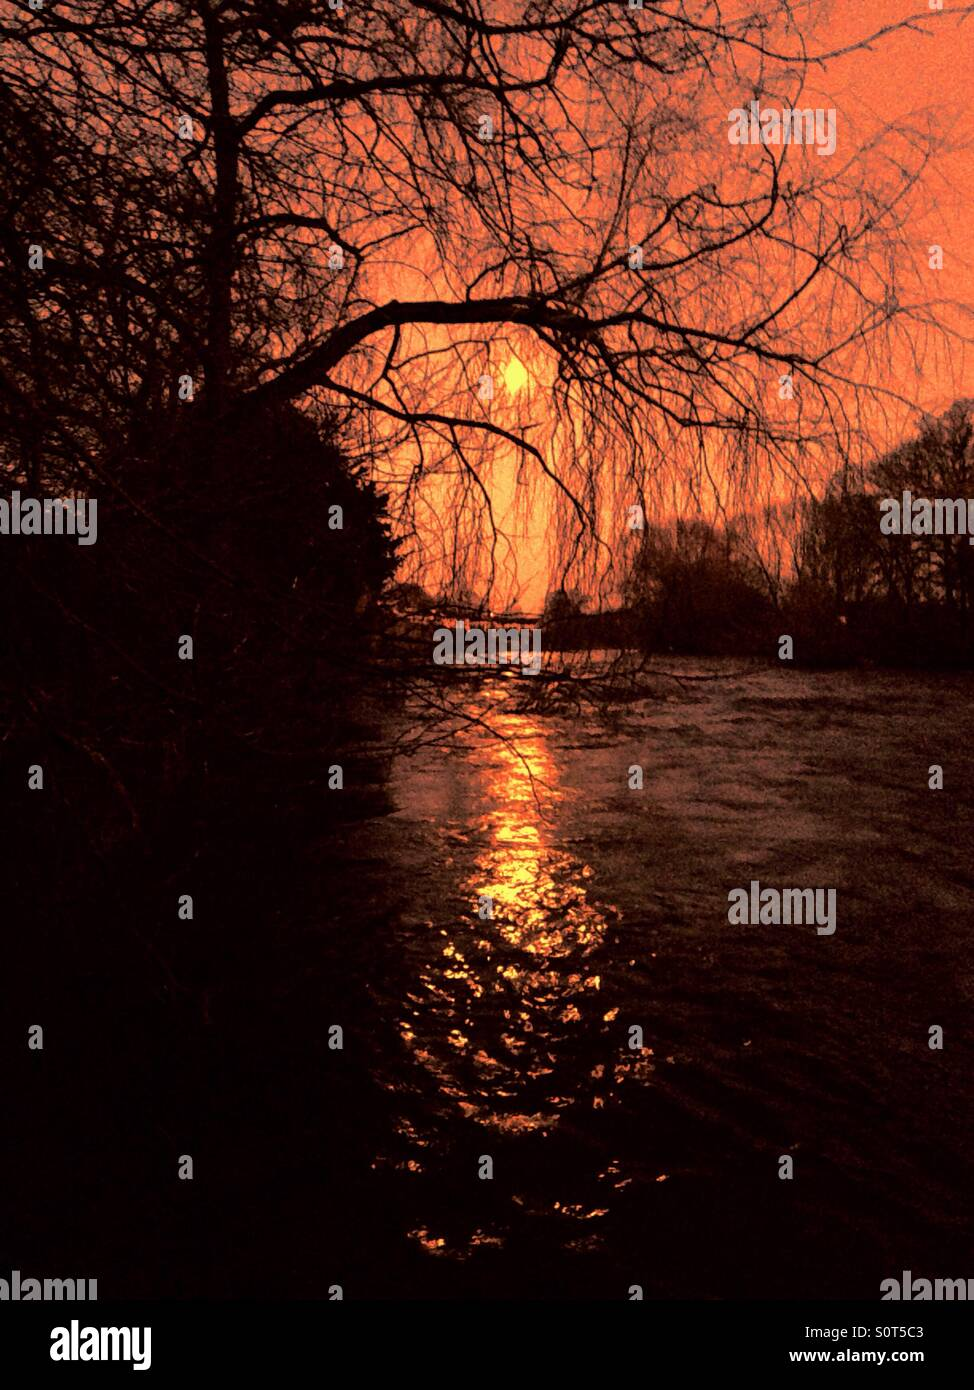 Sunrise over the River Tees - Stock Image